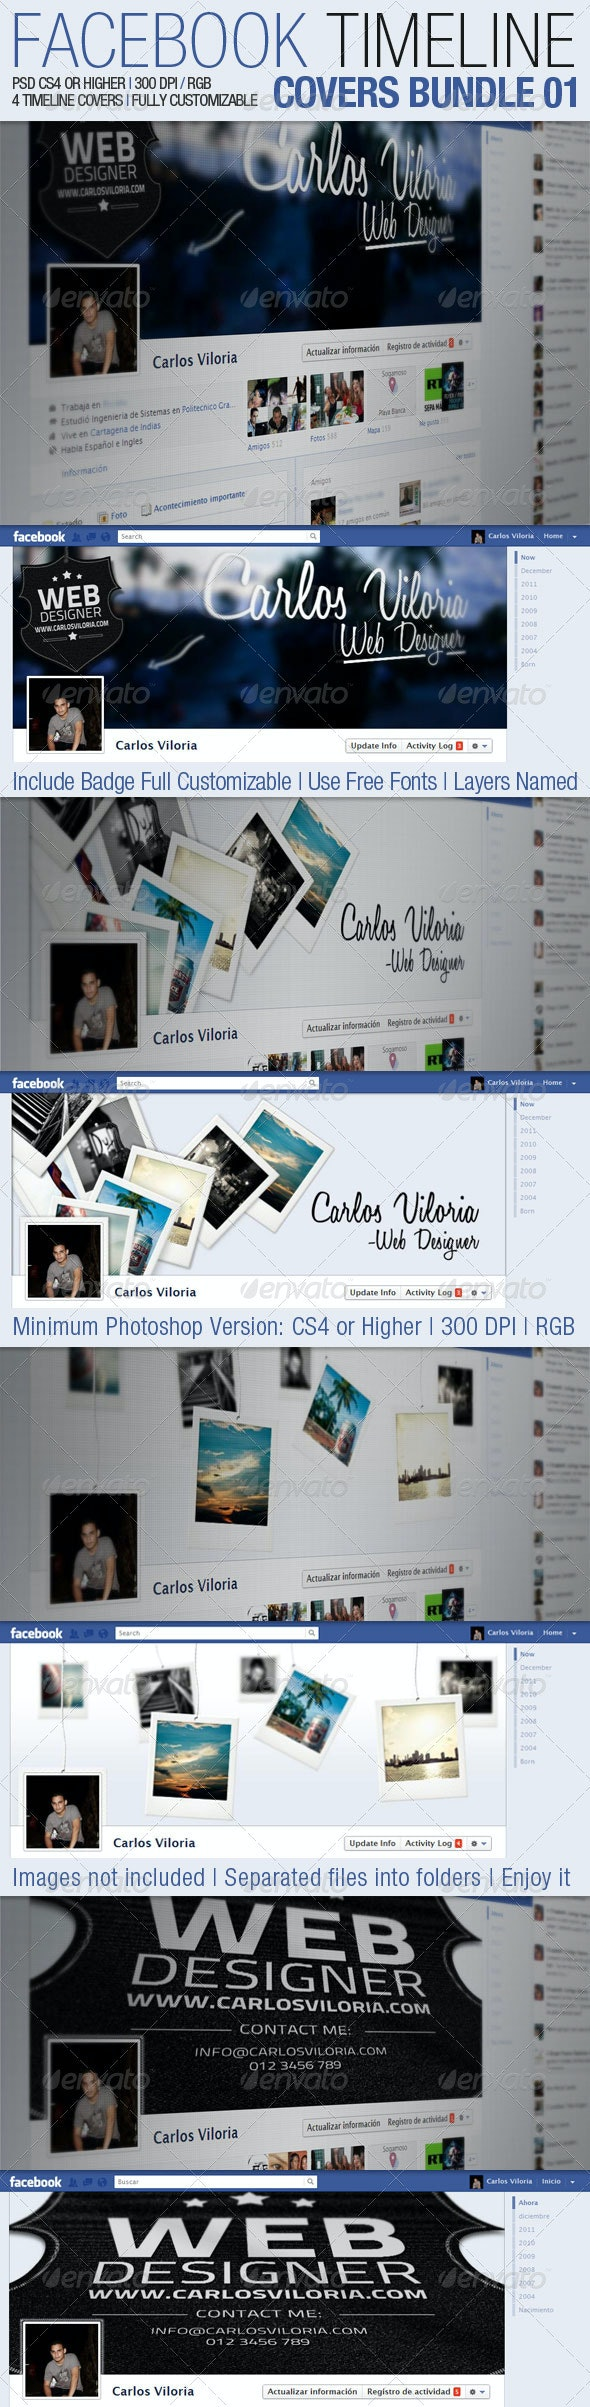 Facebook Timeline Covers Bundle 01 - Facebook Timeline Covers Social Media